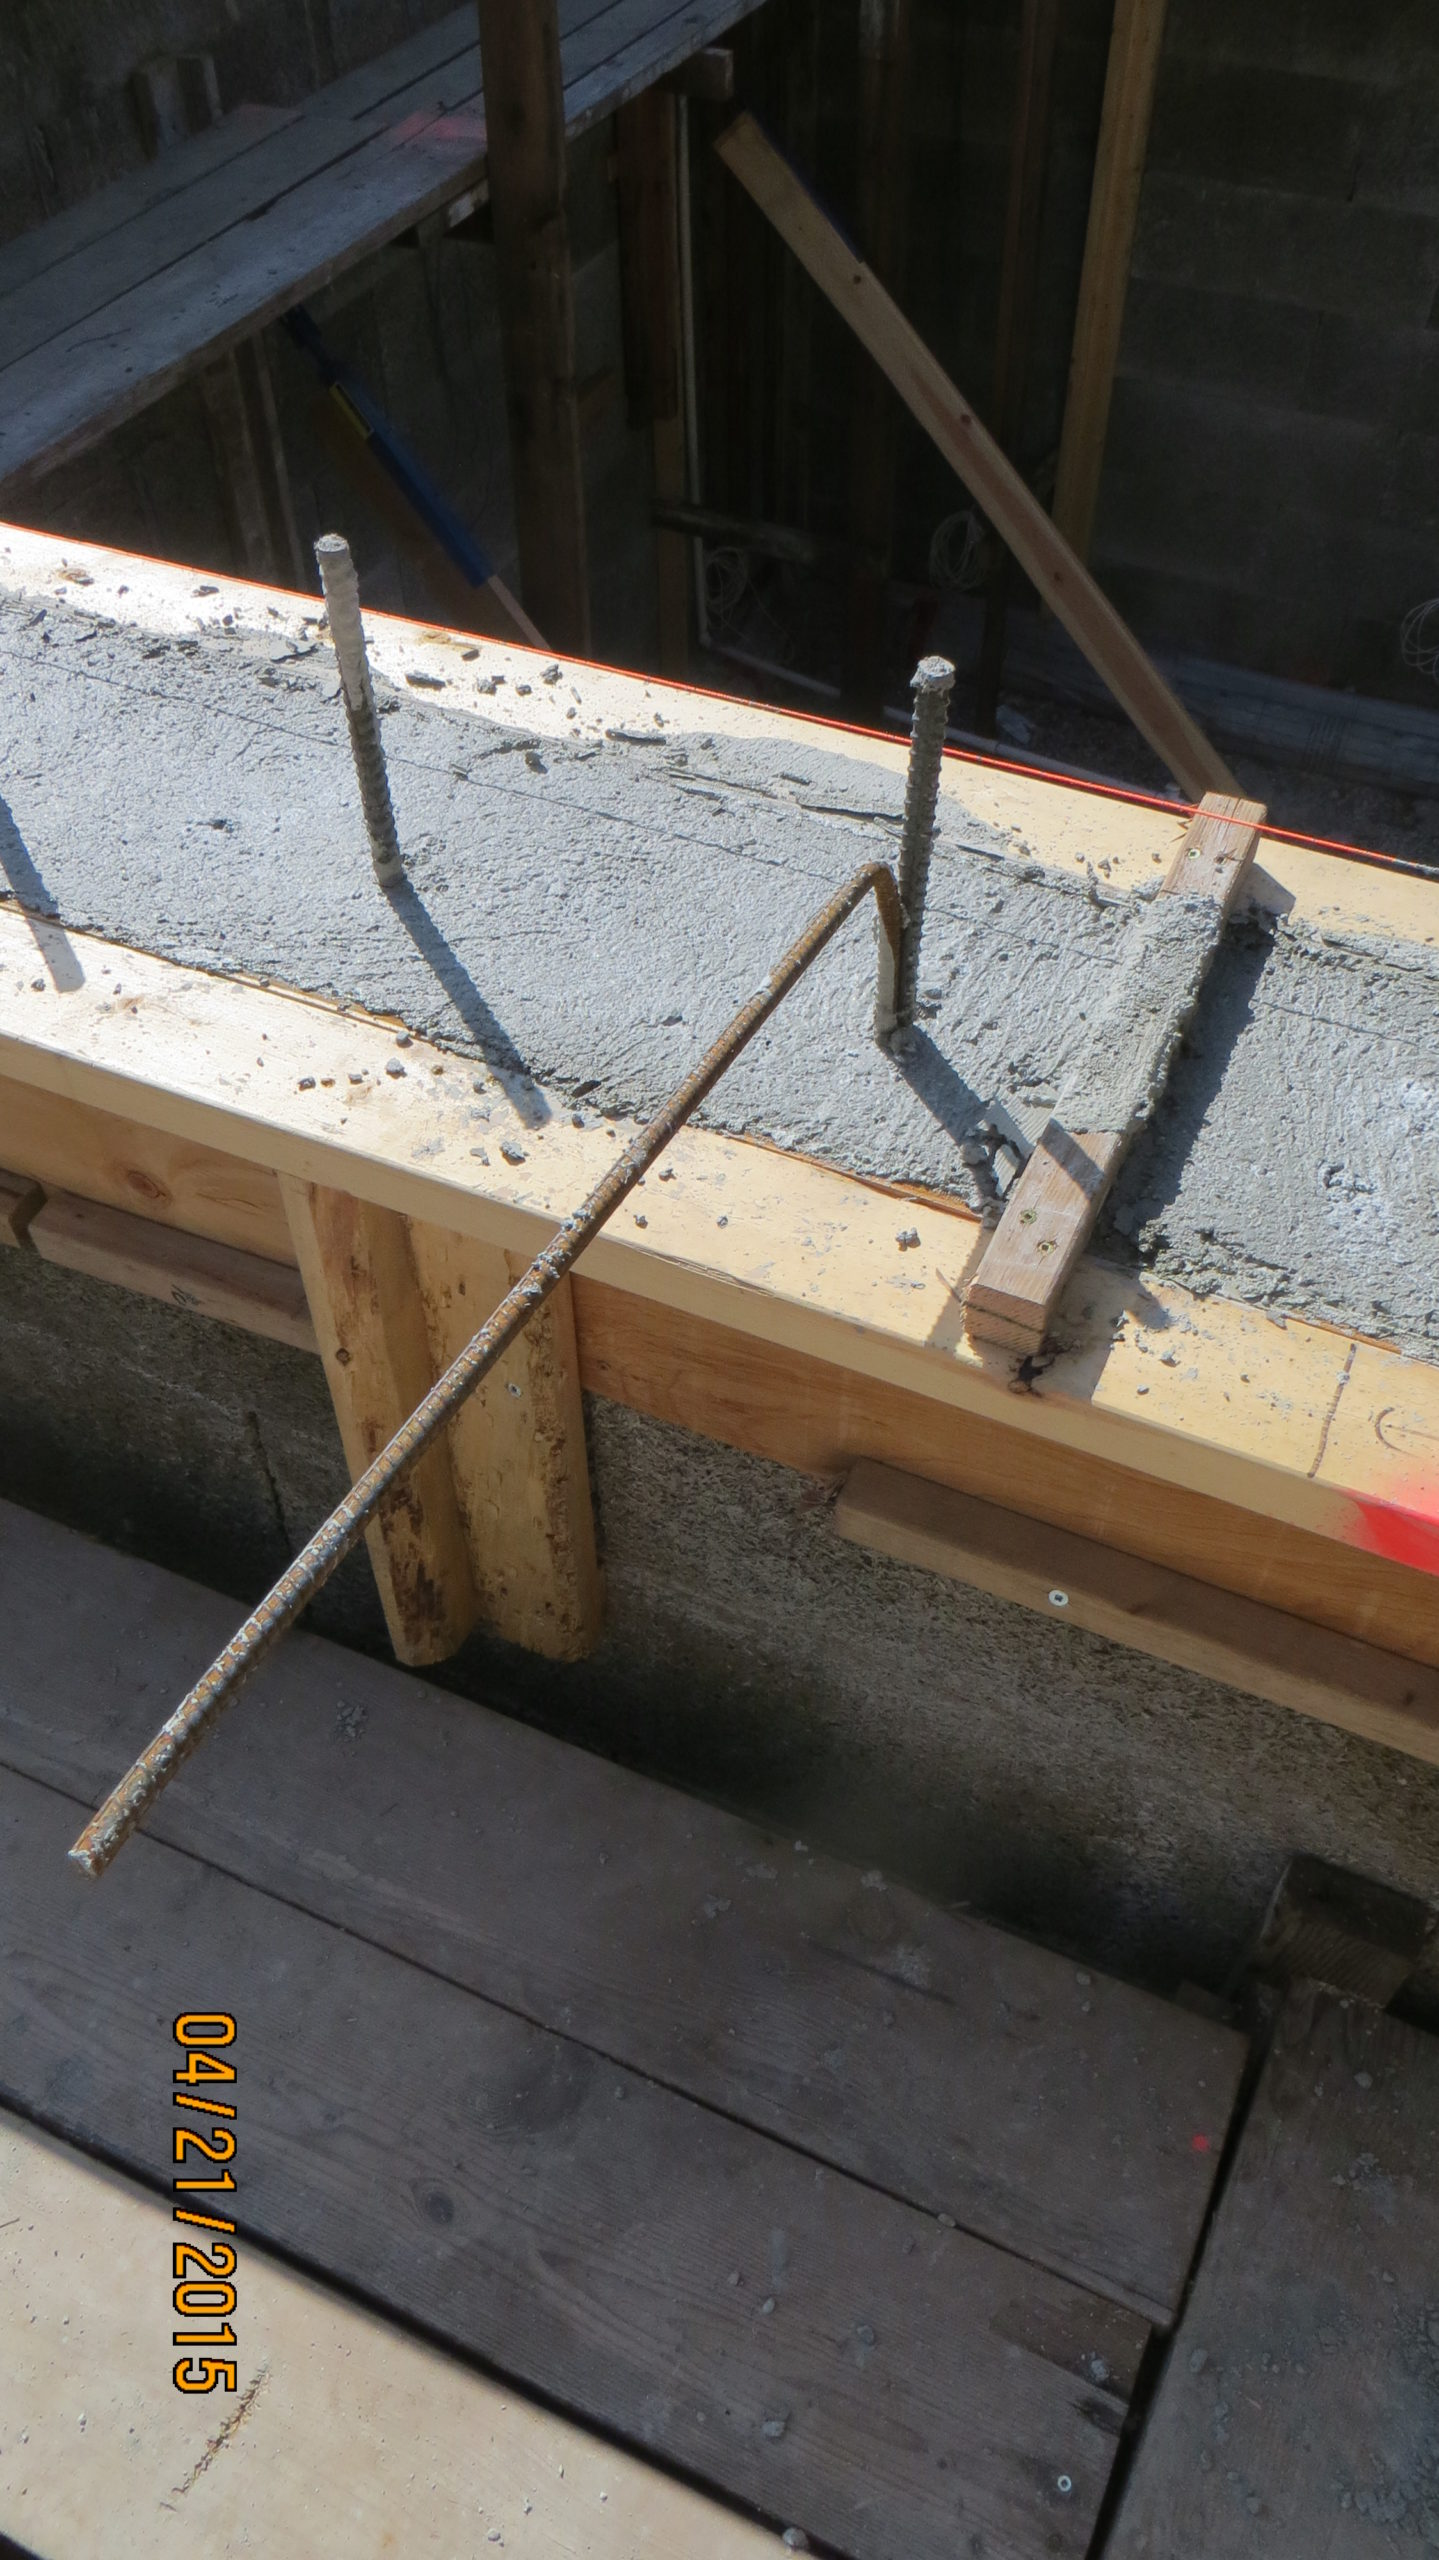 Something else that I 'prepped' was to attach the bend dowels for the garage suspended slab to the ICF vert bars at the right height.  This allowed them to just be 'swung out' once the pour was complete, but the concrete was still wet enough.  I checked all this morning and all were well secured.